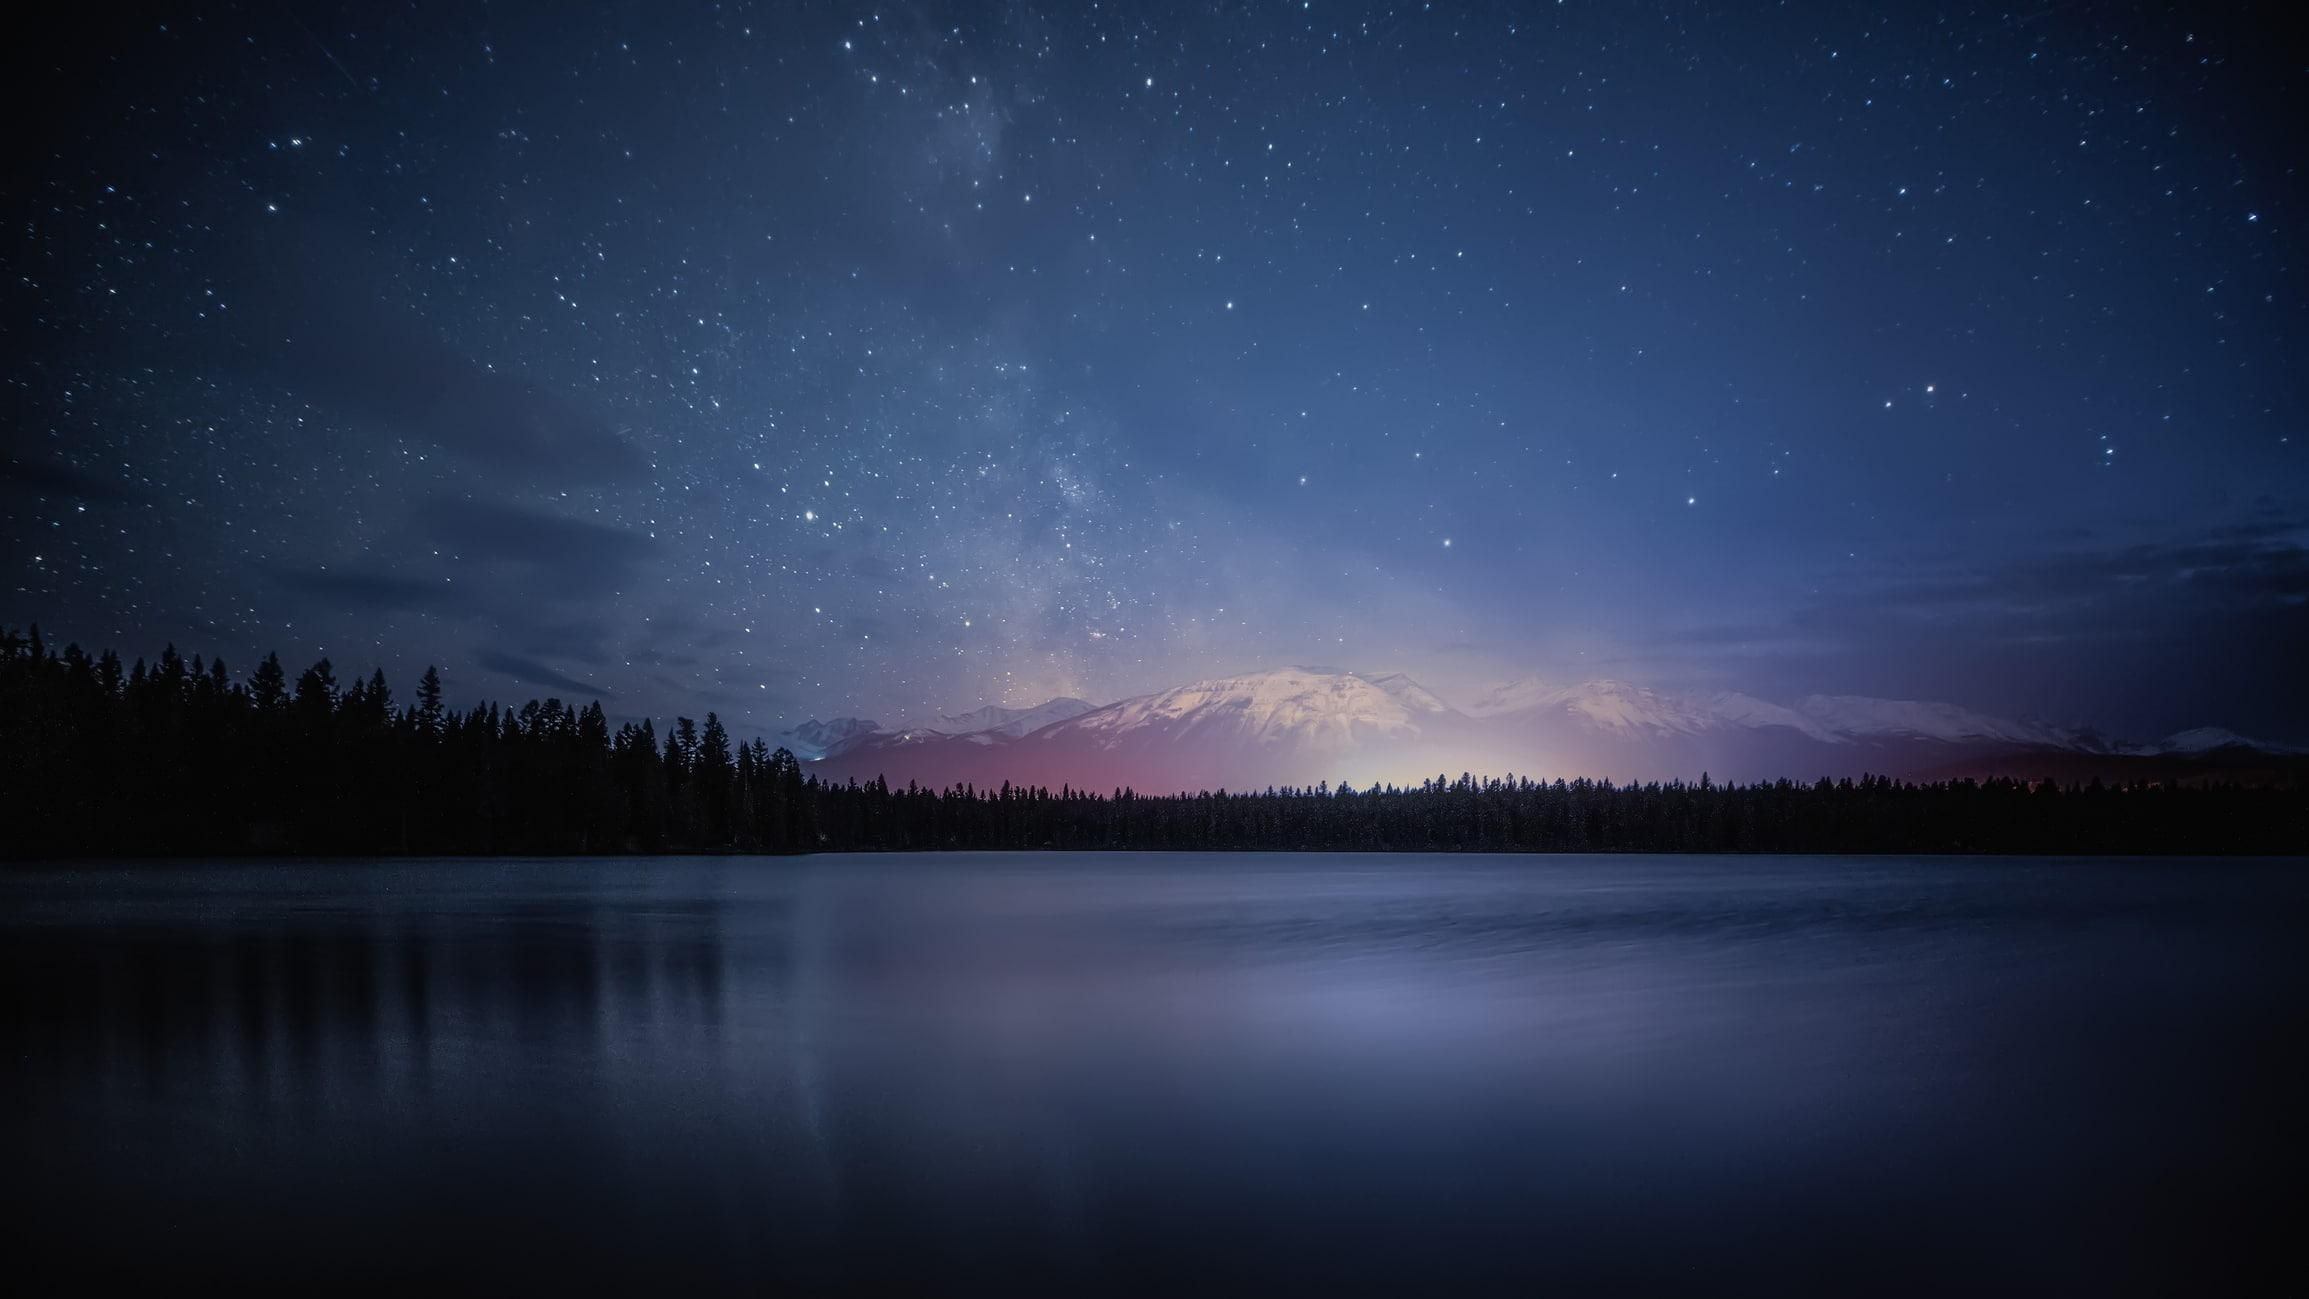 Stars twinkle above a sprawling and calm lake.